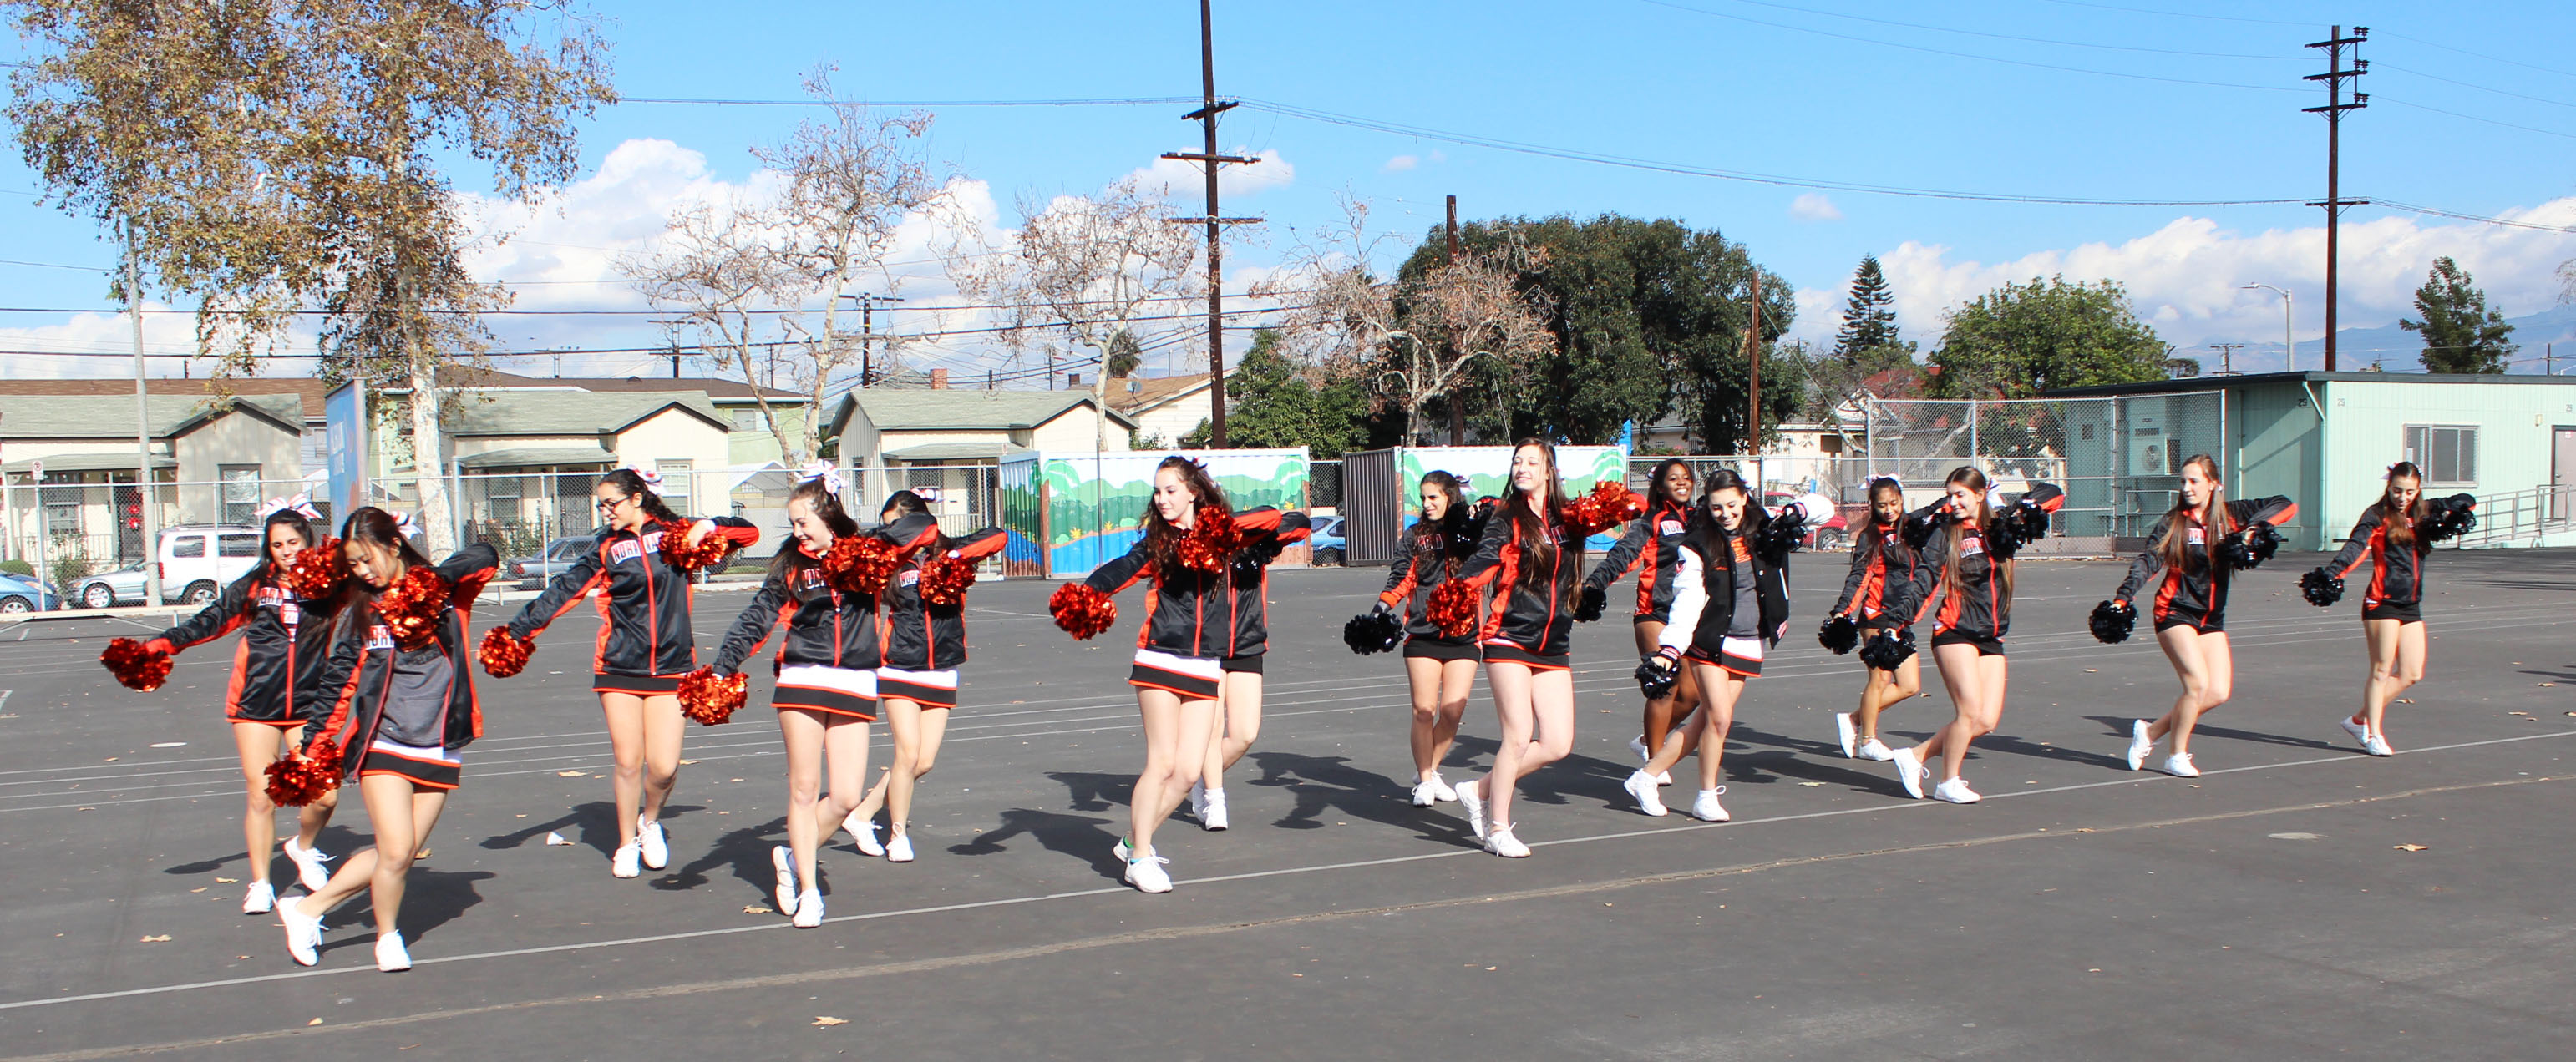 Cheer performs for Albion students during recess as part of the day's festivities.